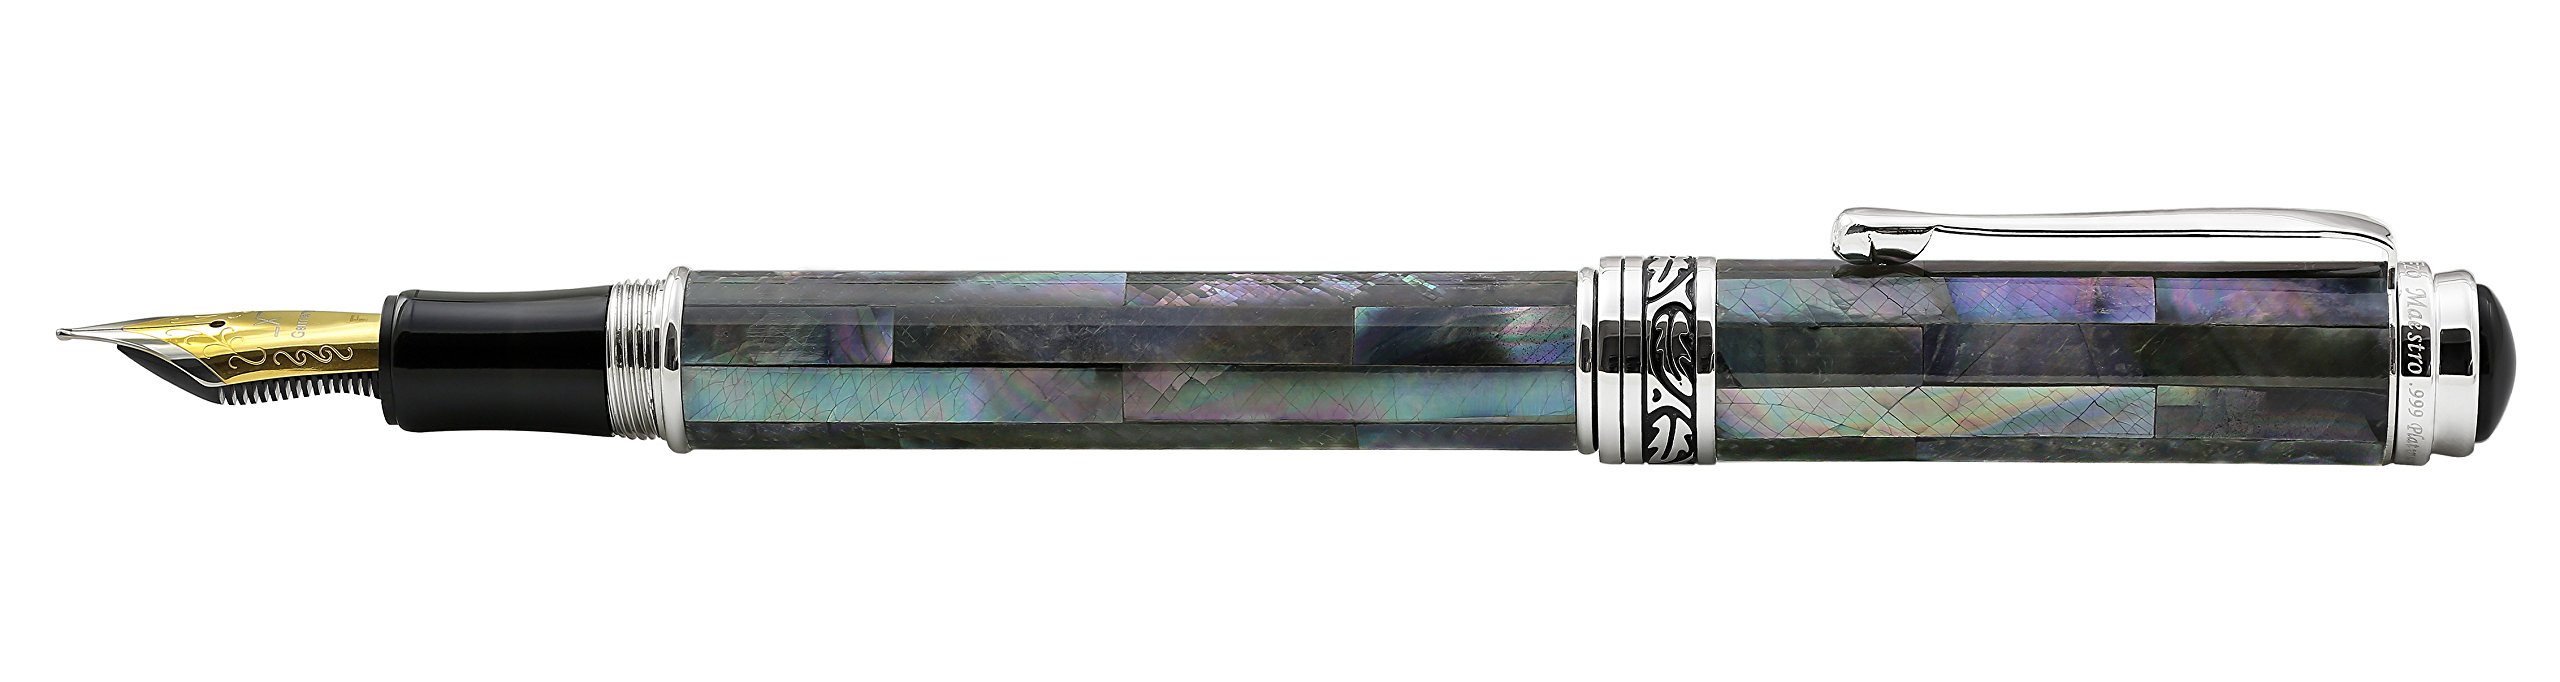 Xezo Maestro Iridescent Natural Black Mother of Pearl Platinum Plated Fine Fountain Pen. No Two Pens Alike by Xezo (Image #4)